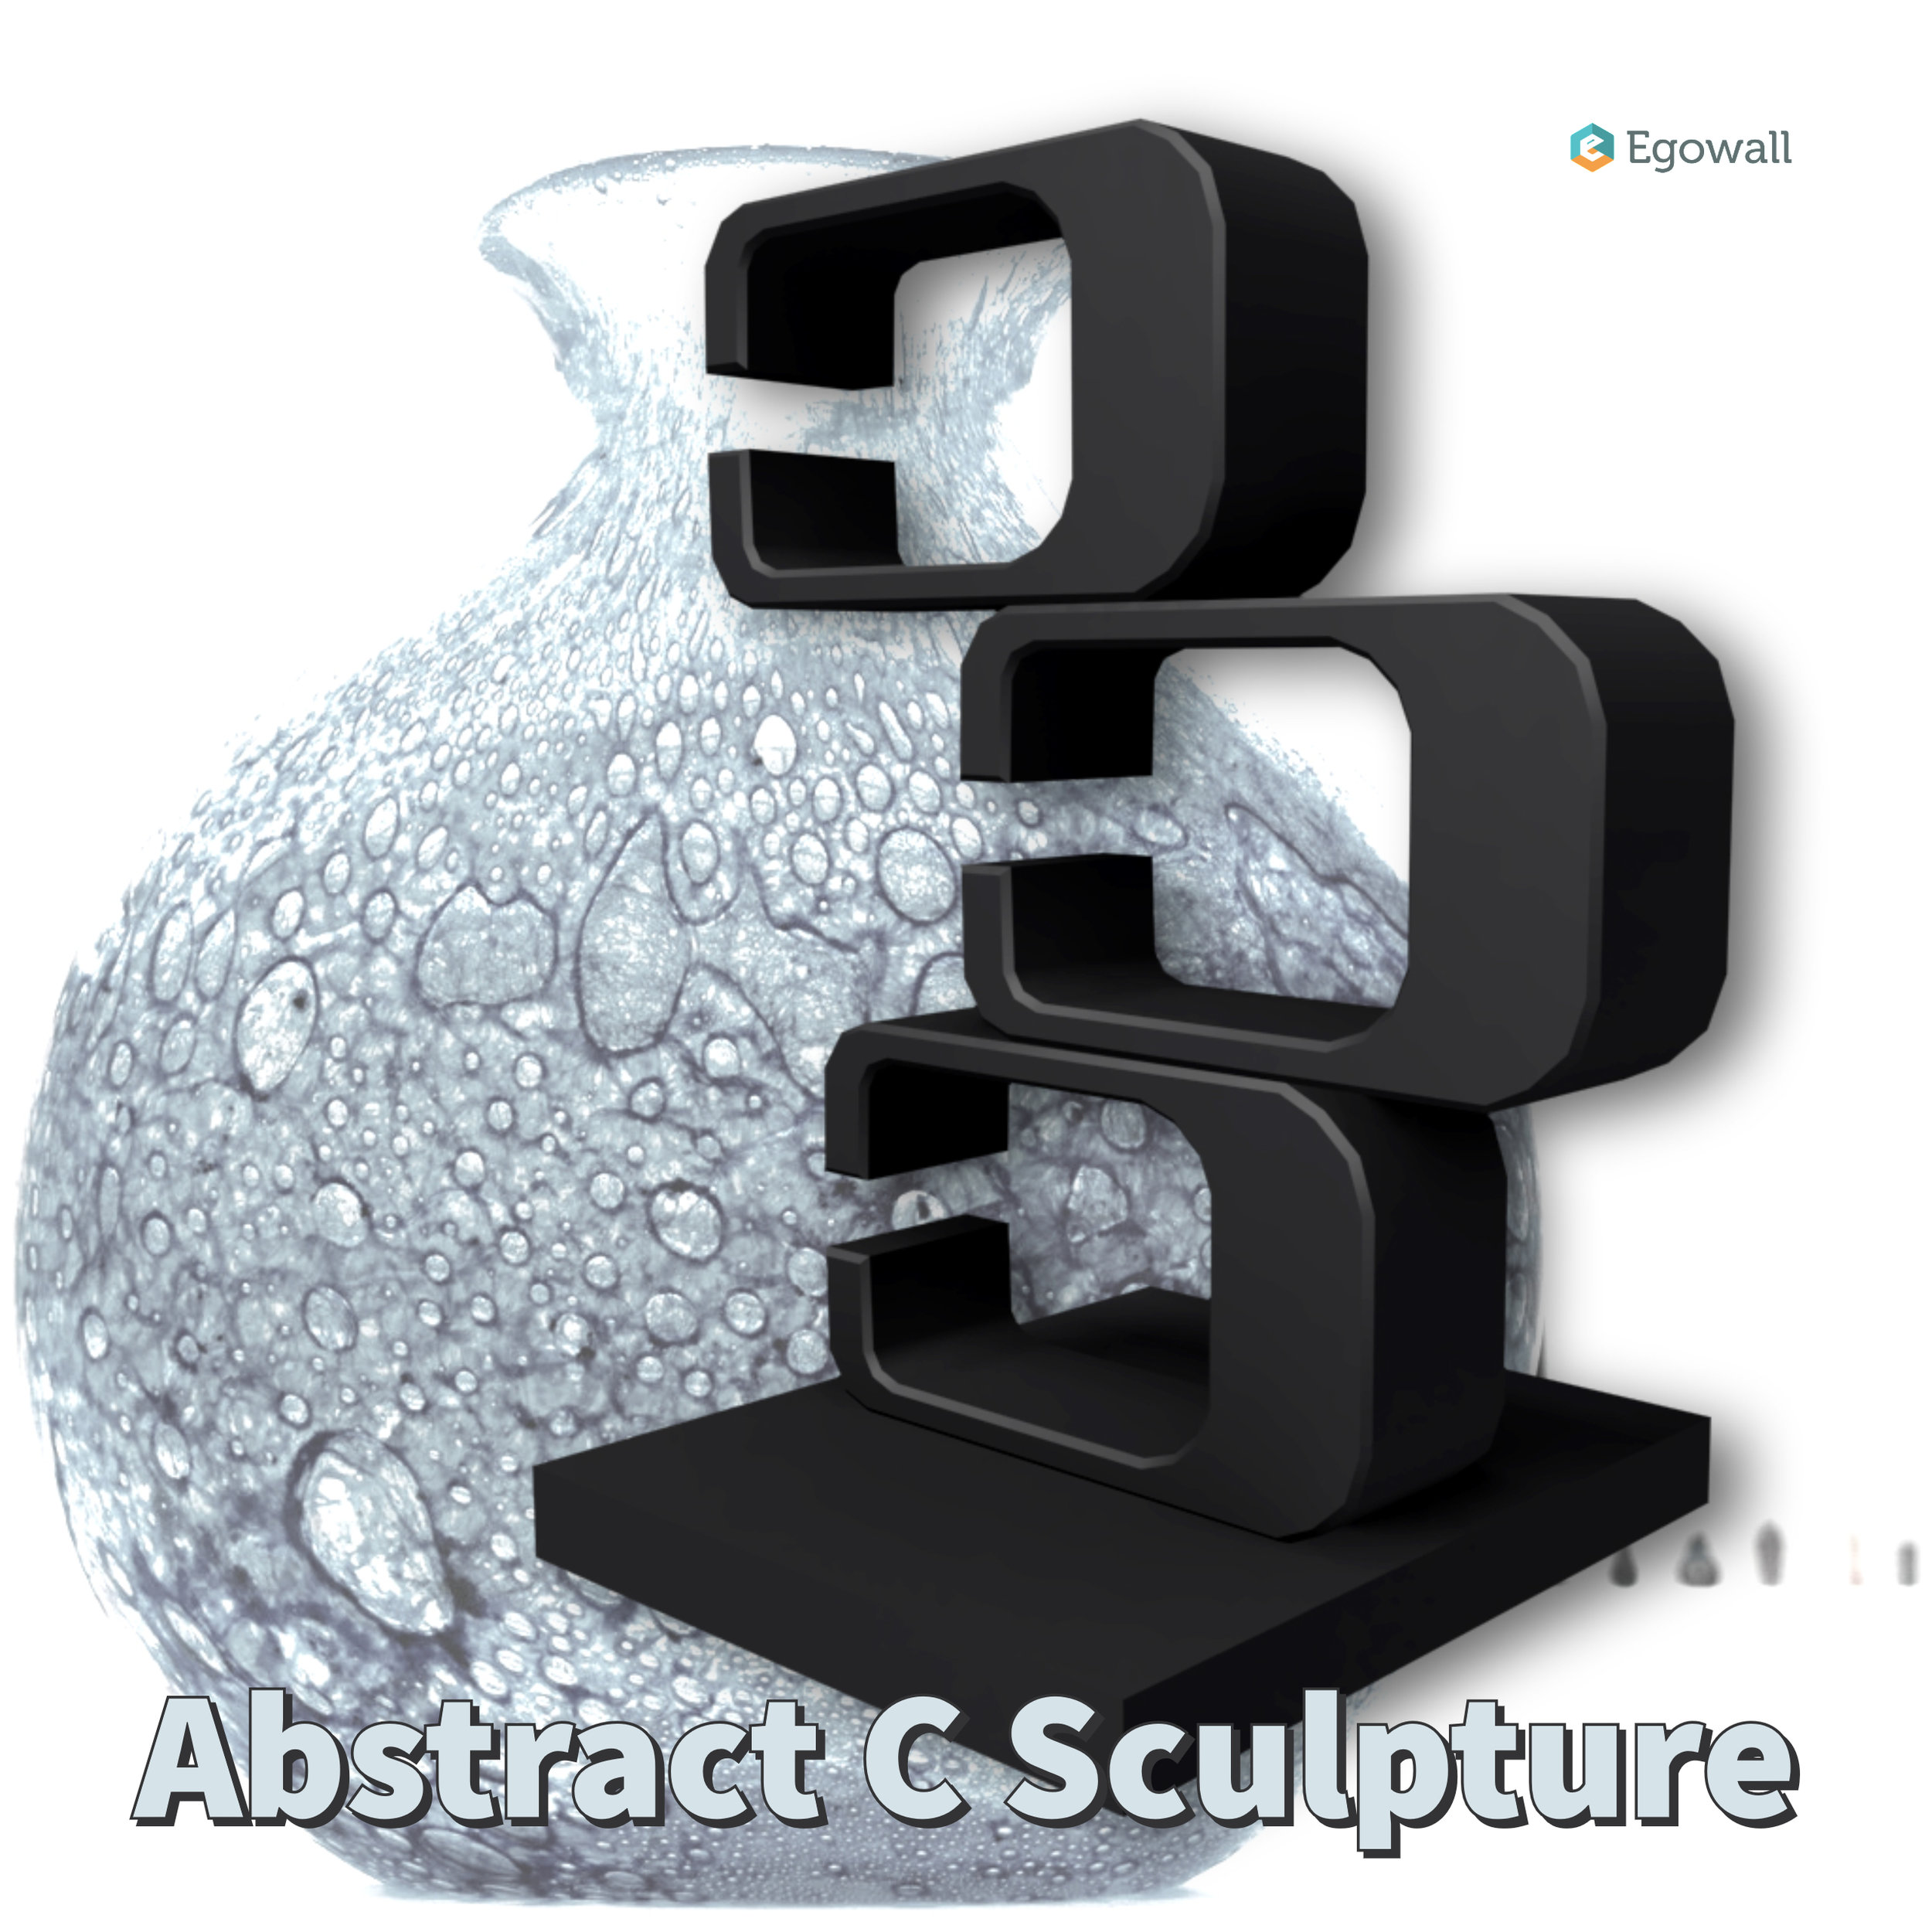 Abstract C Sculpture.Instagram.jpg